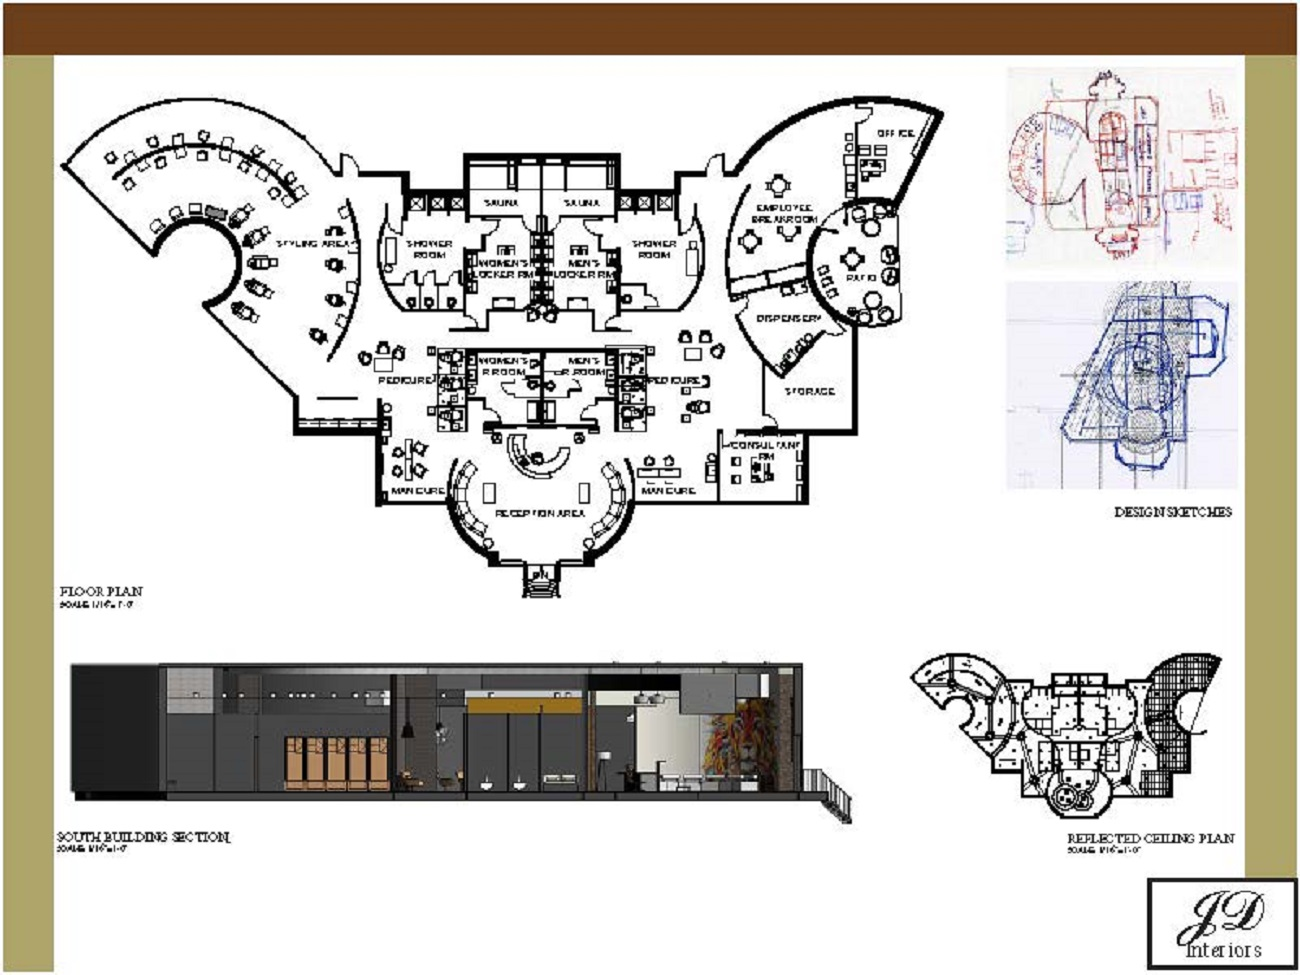 floor plans, section, and sketches